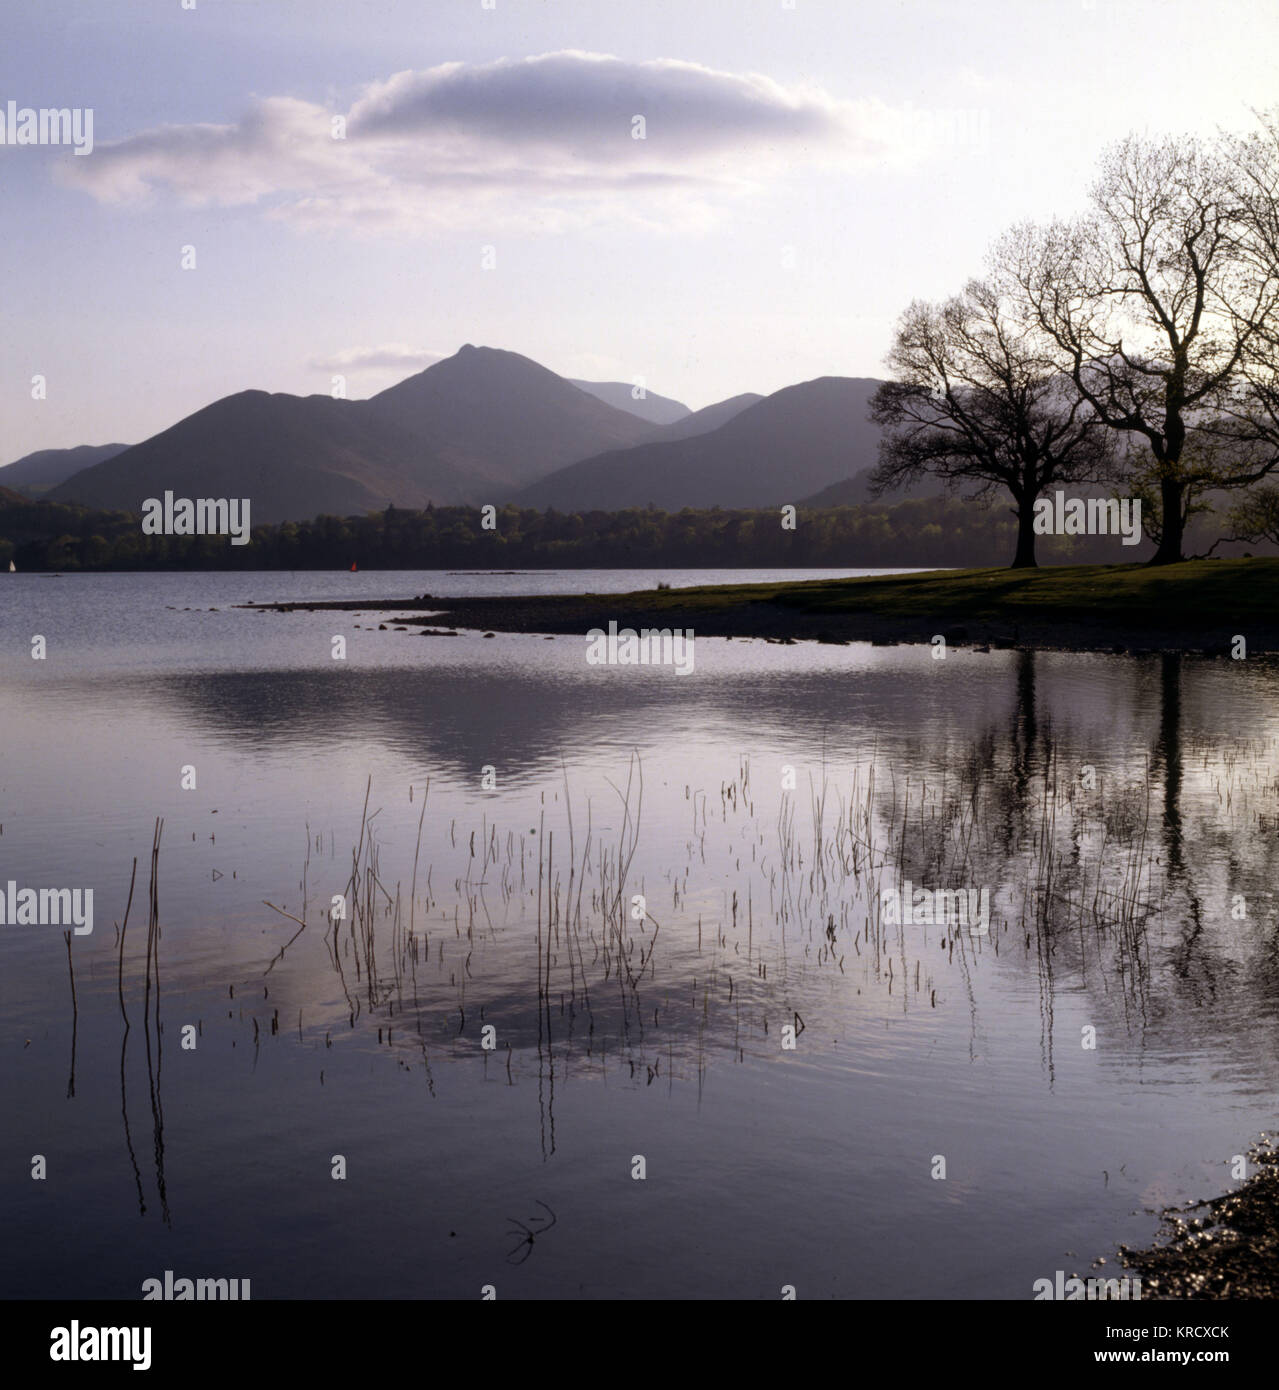 A evening view of  Derwentwater, The Lake  District, Cumbria, looking to  Causey Pike from Strandshag  Bay.     - Stock Image